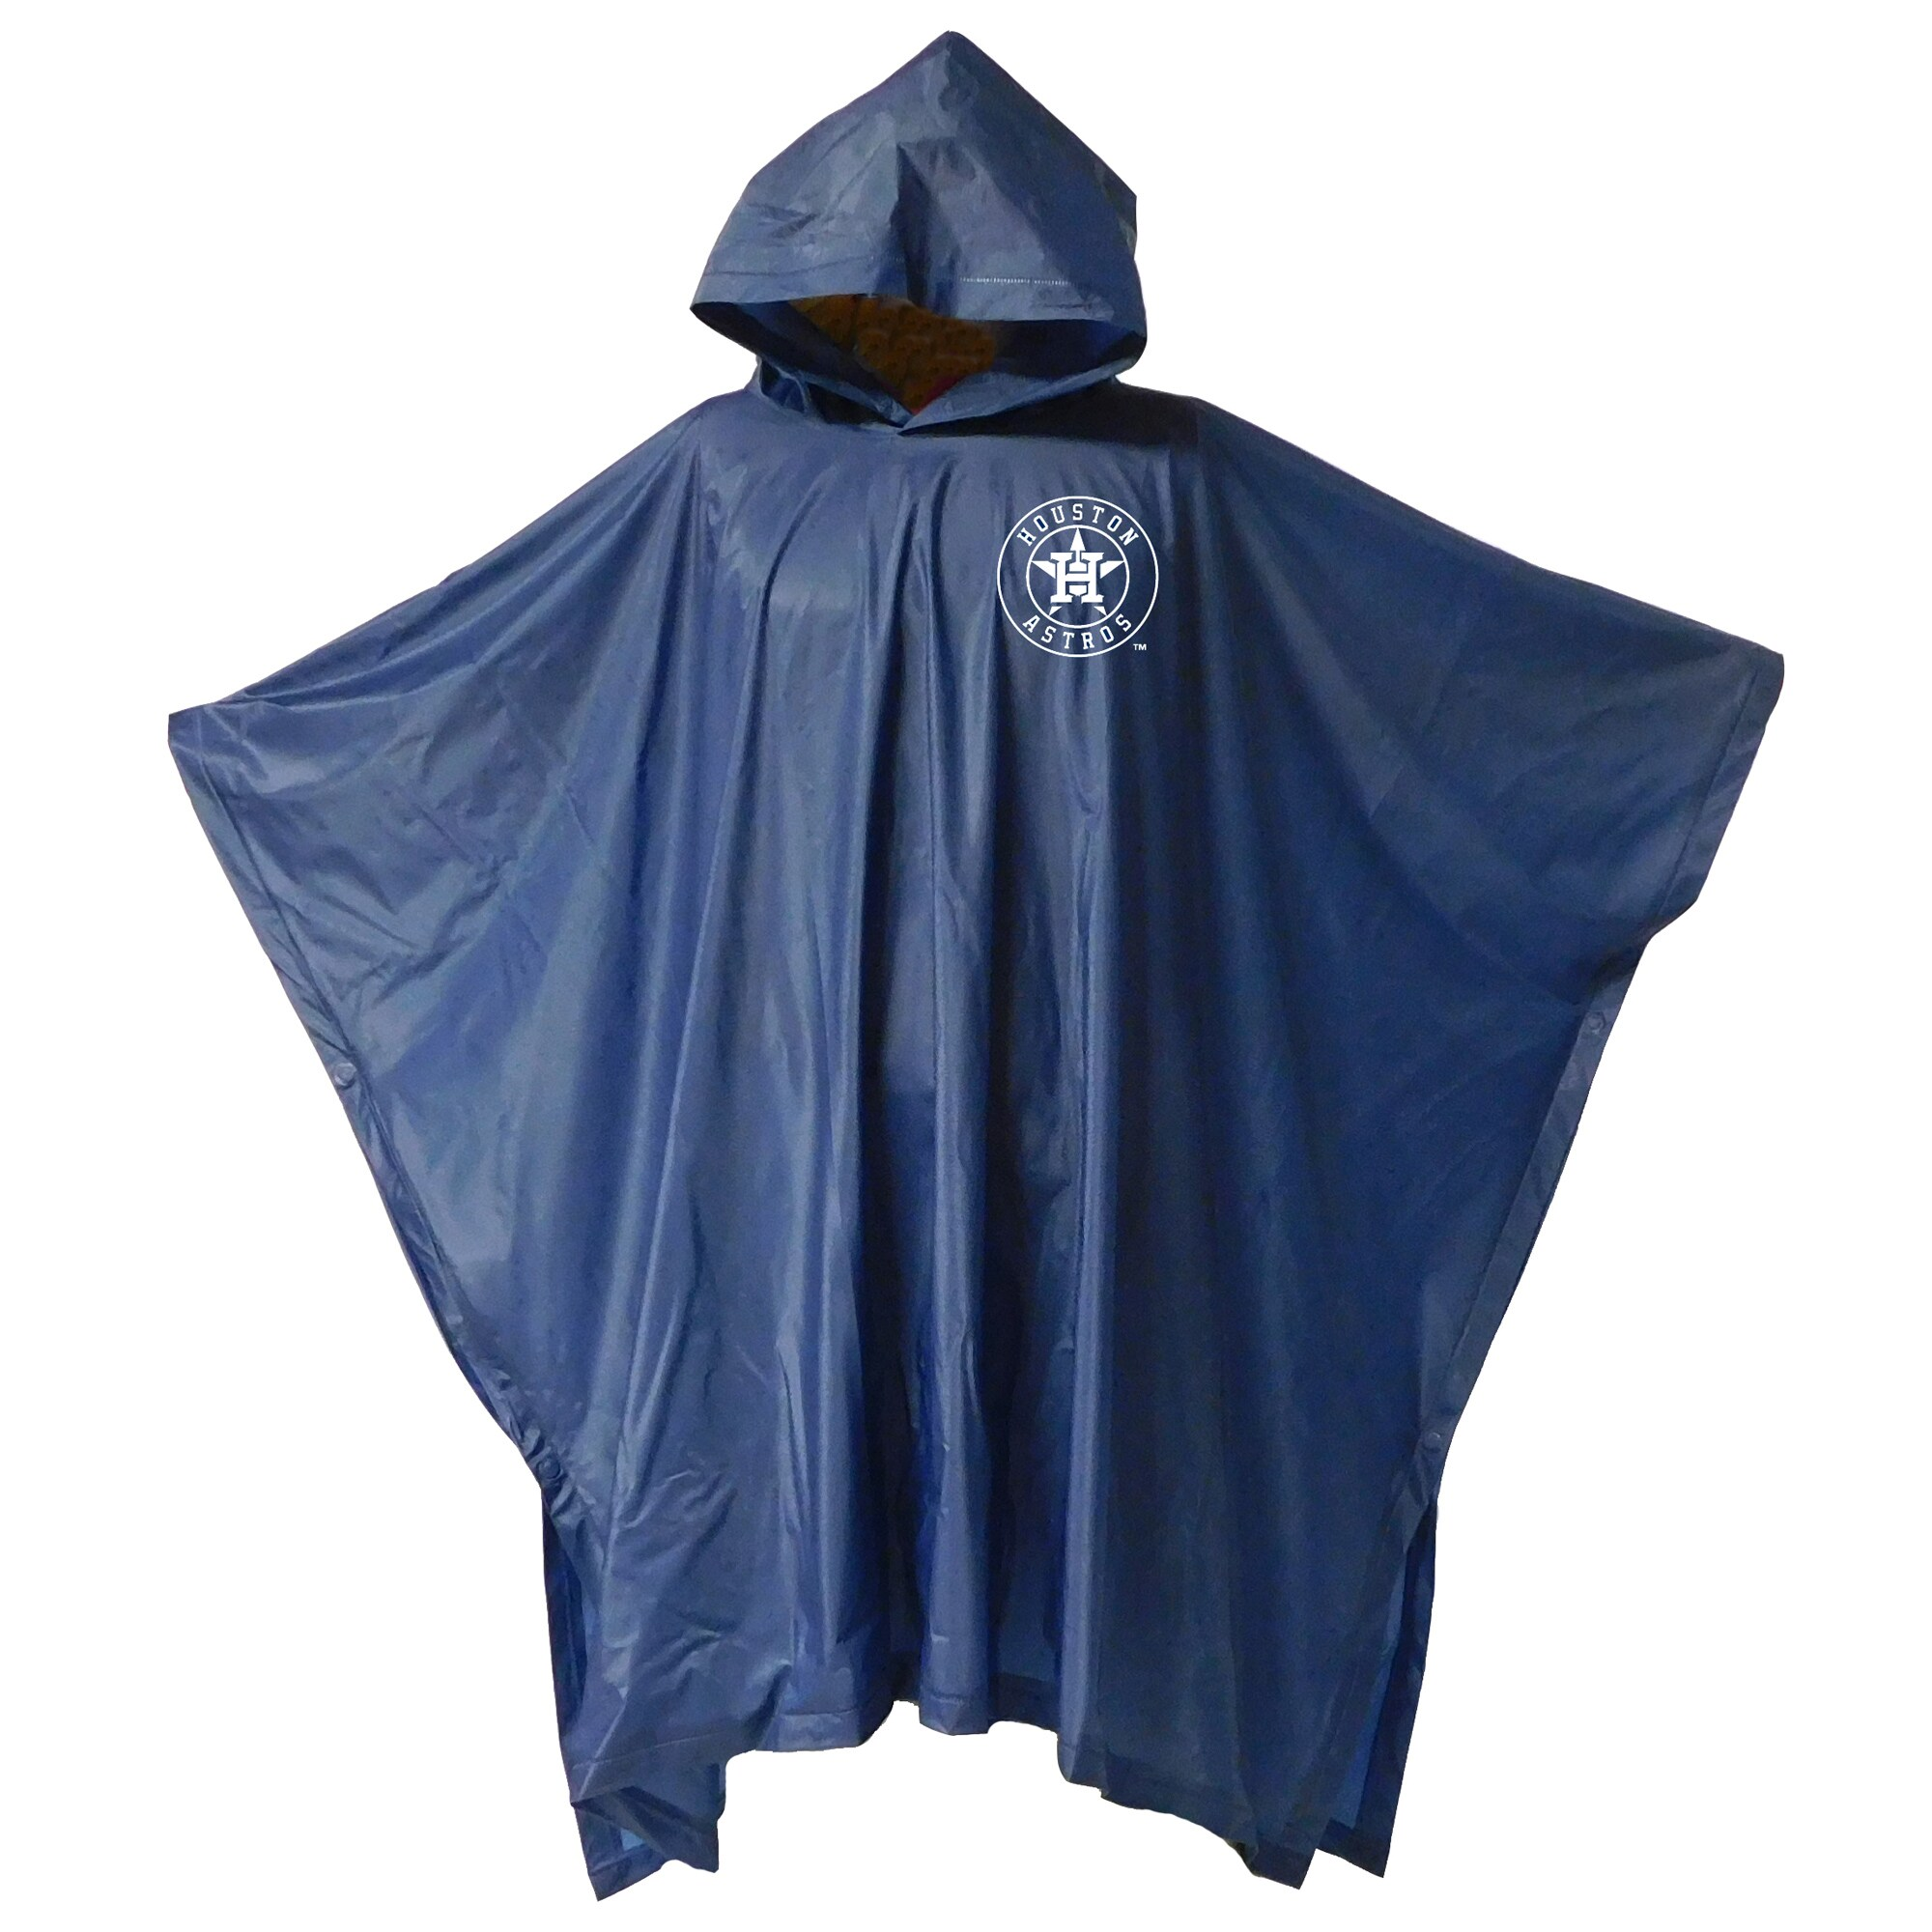 Houston Astros Stadium Poncho